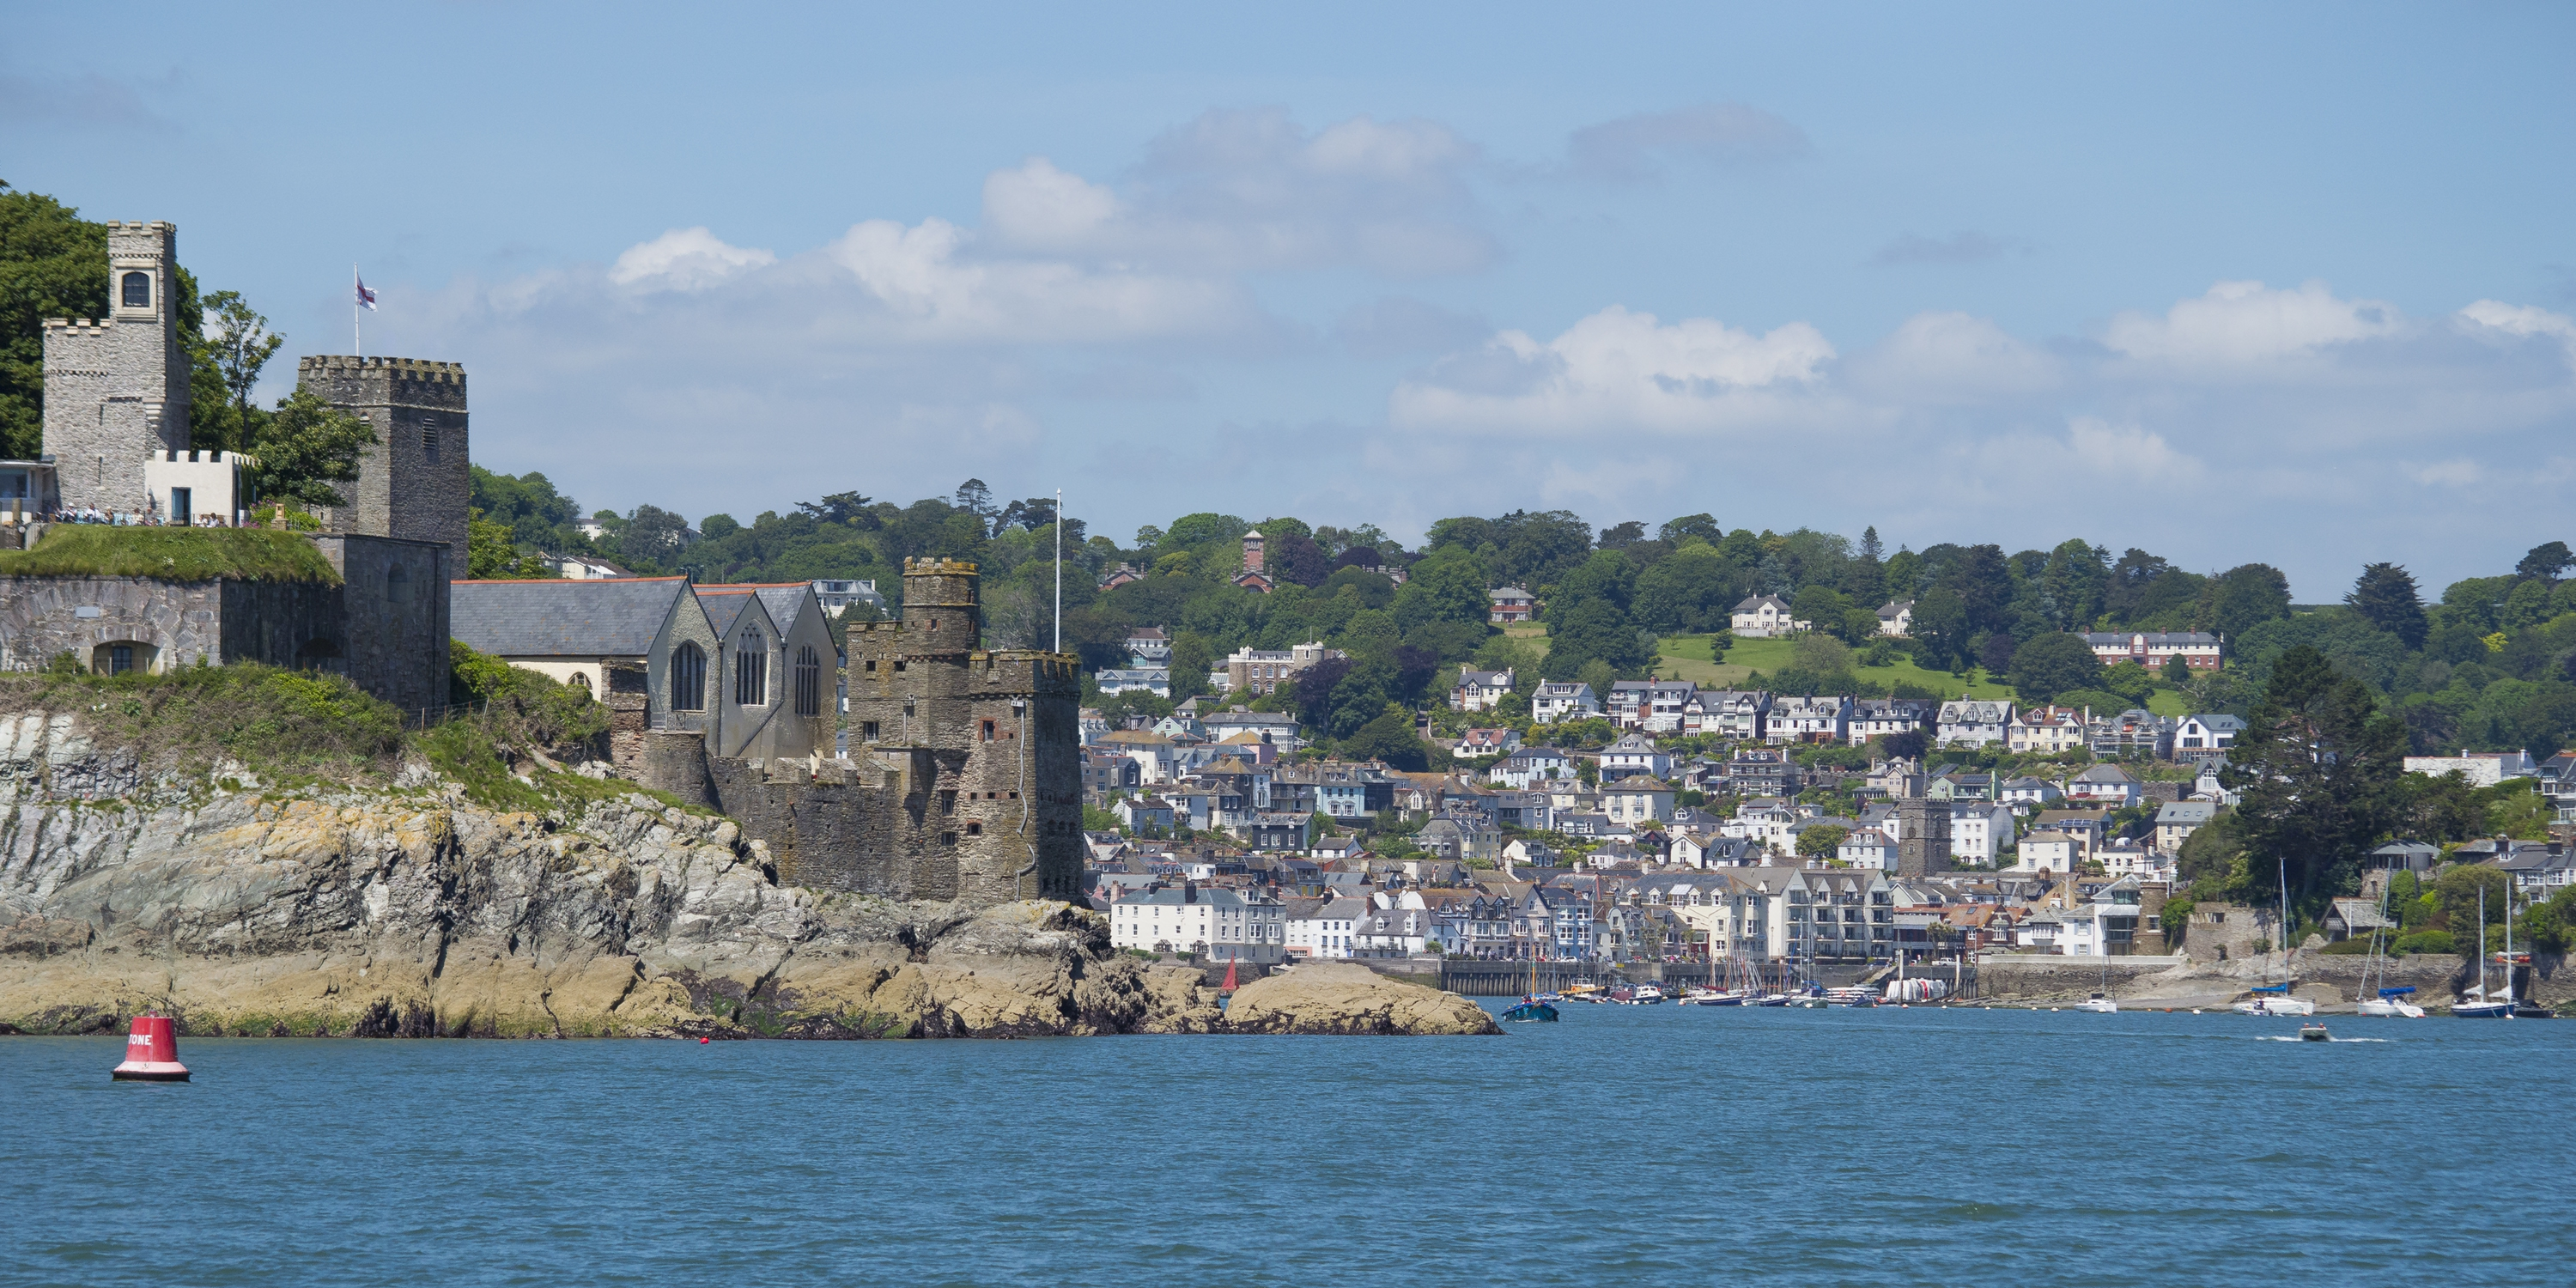 Dartmouth Castle and harbour